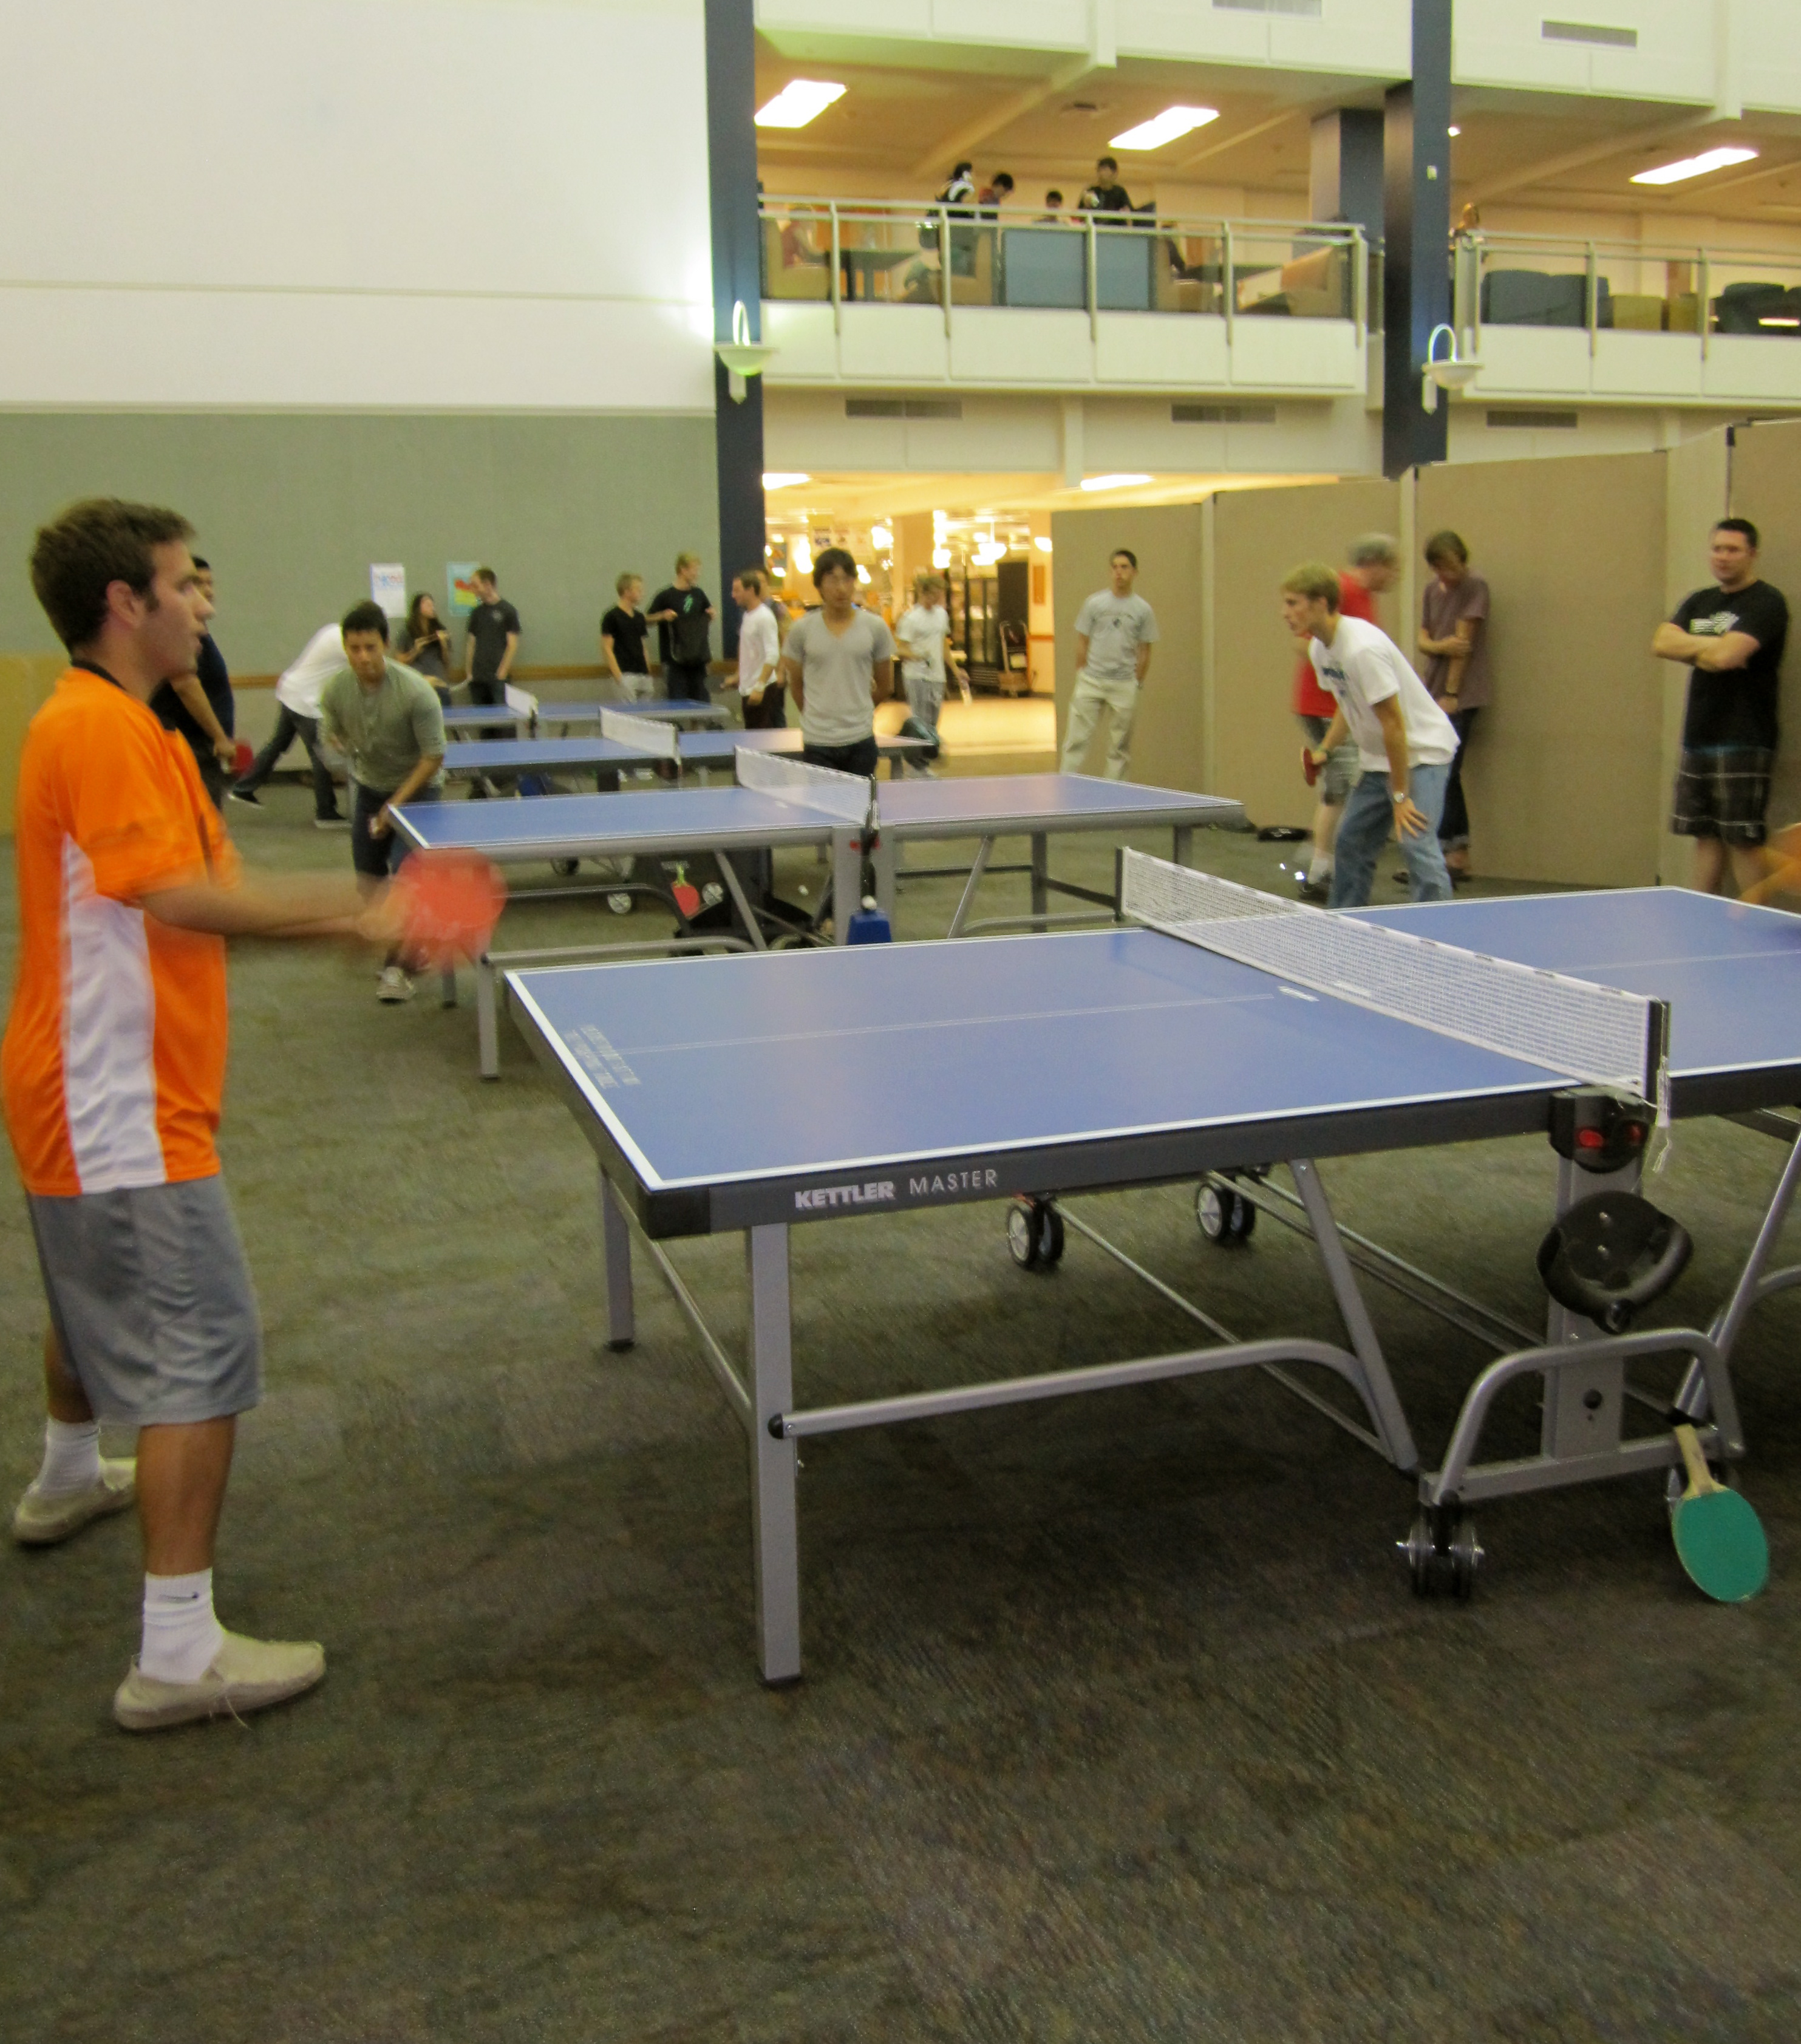 Members of the ping pong club practicing what they love on a Tuesday night.